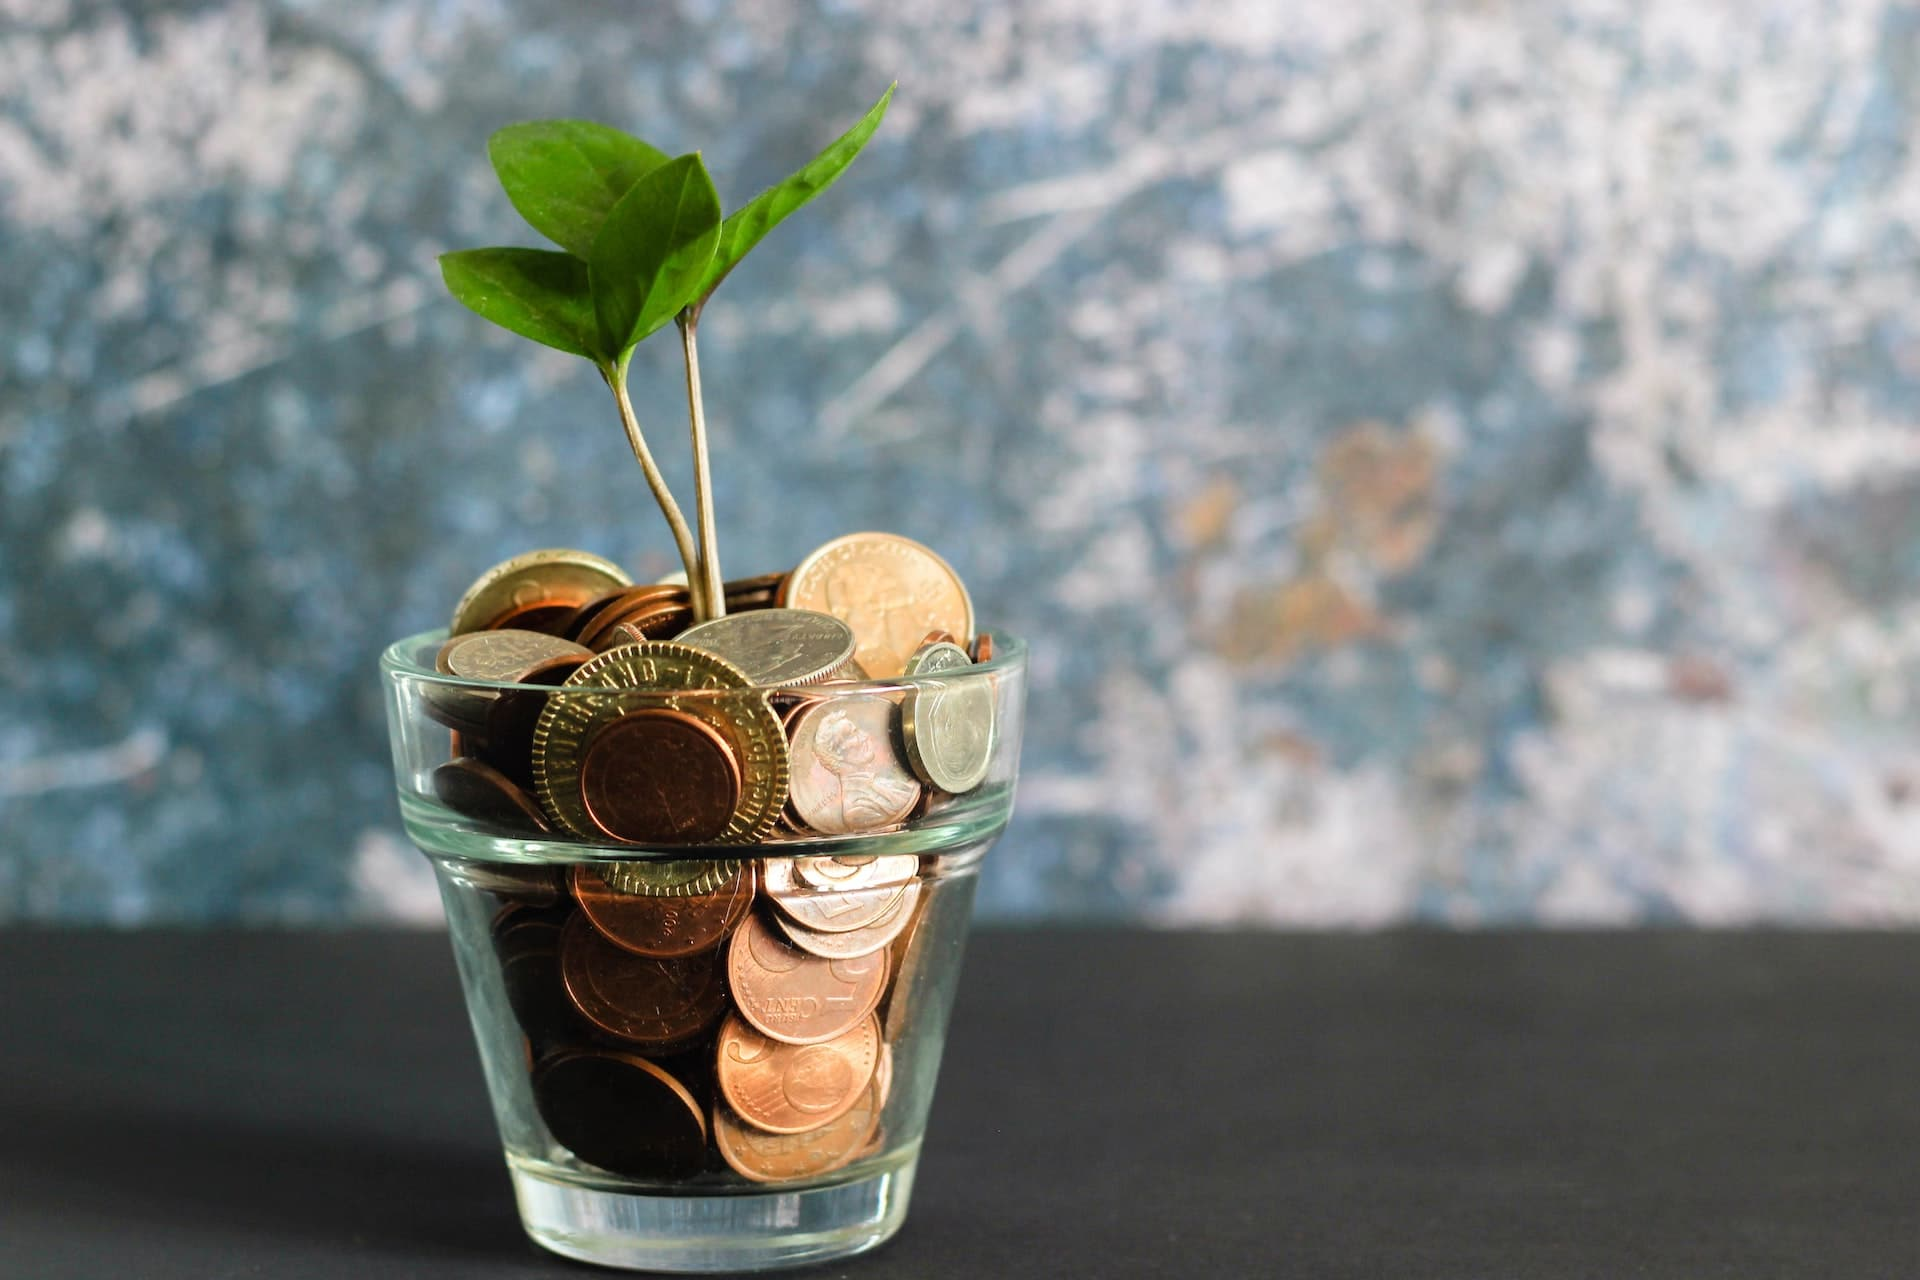 Jar of coins with a plant growing. LAPA Fundraising